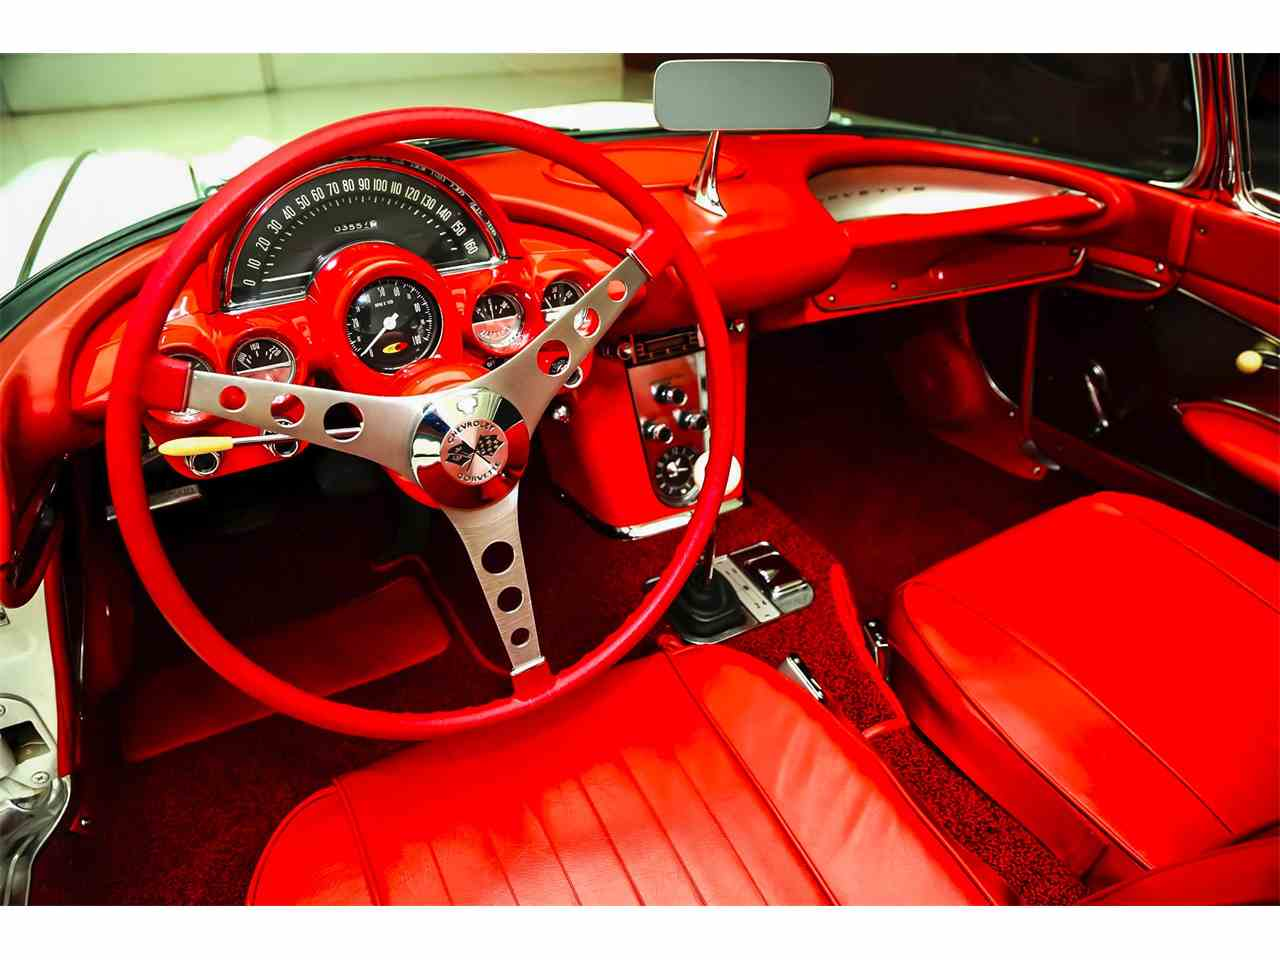 Large Picture of Classic 1959 Chevrolet Corvette - $86,900.00 - JRF4